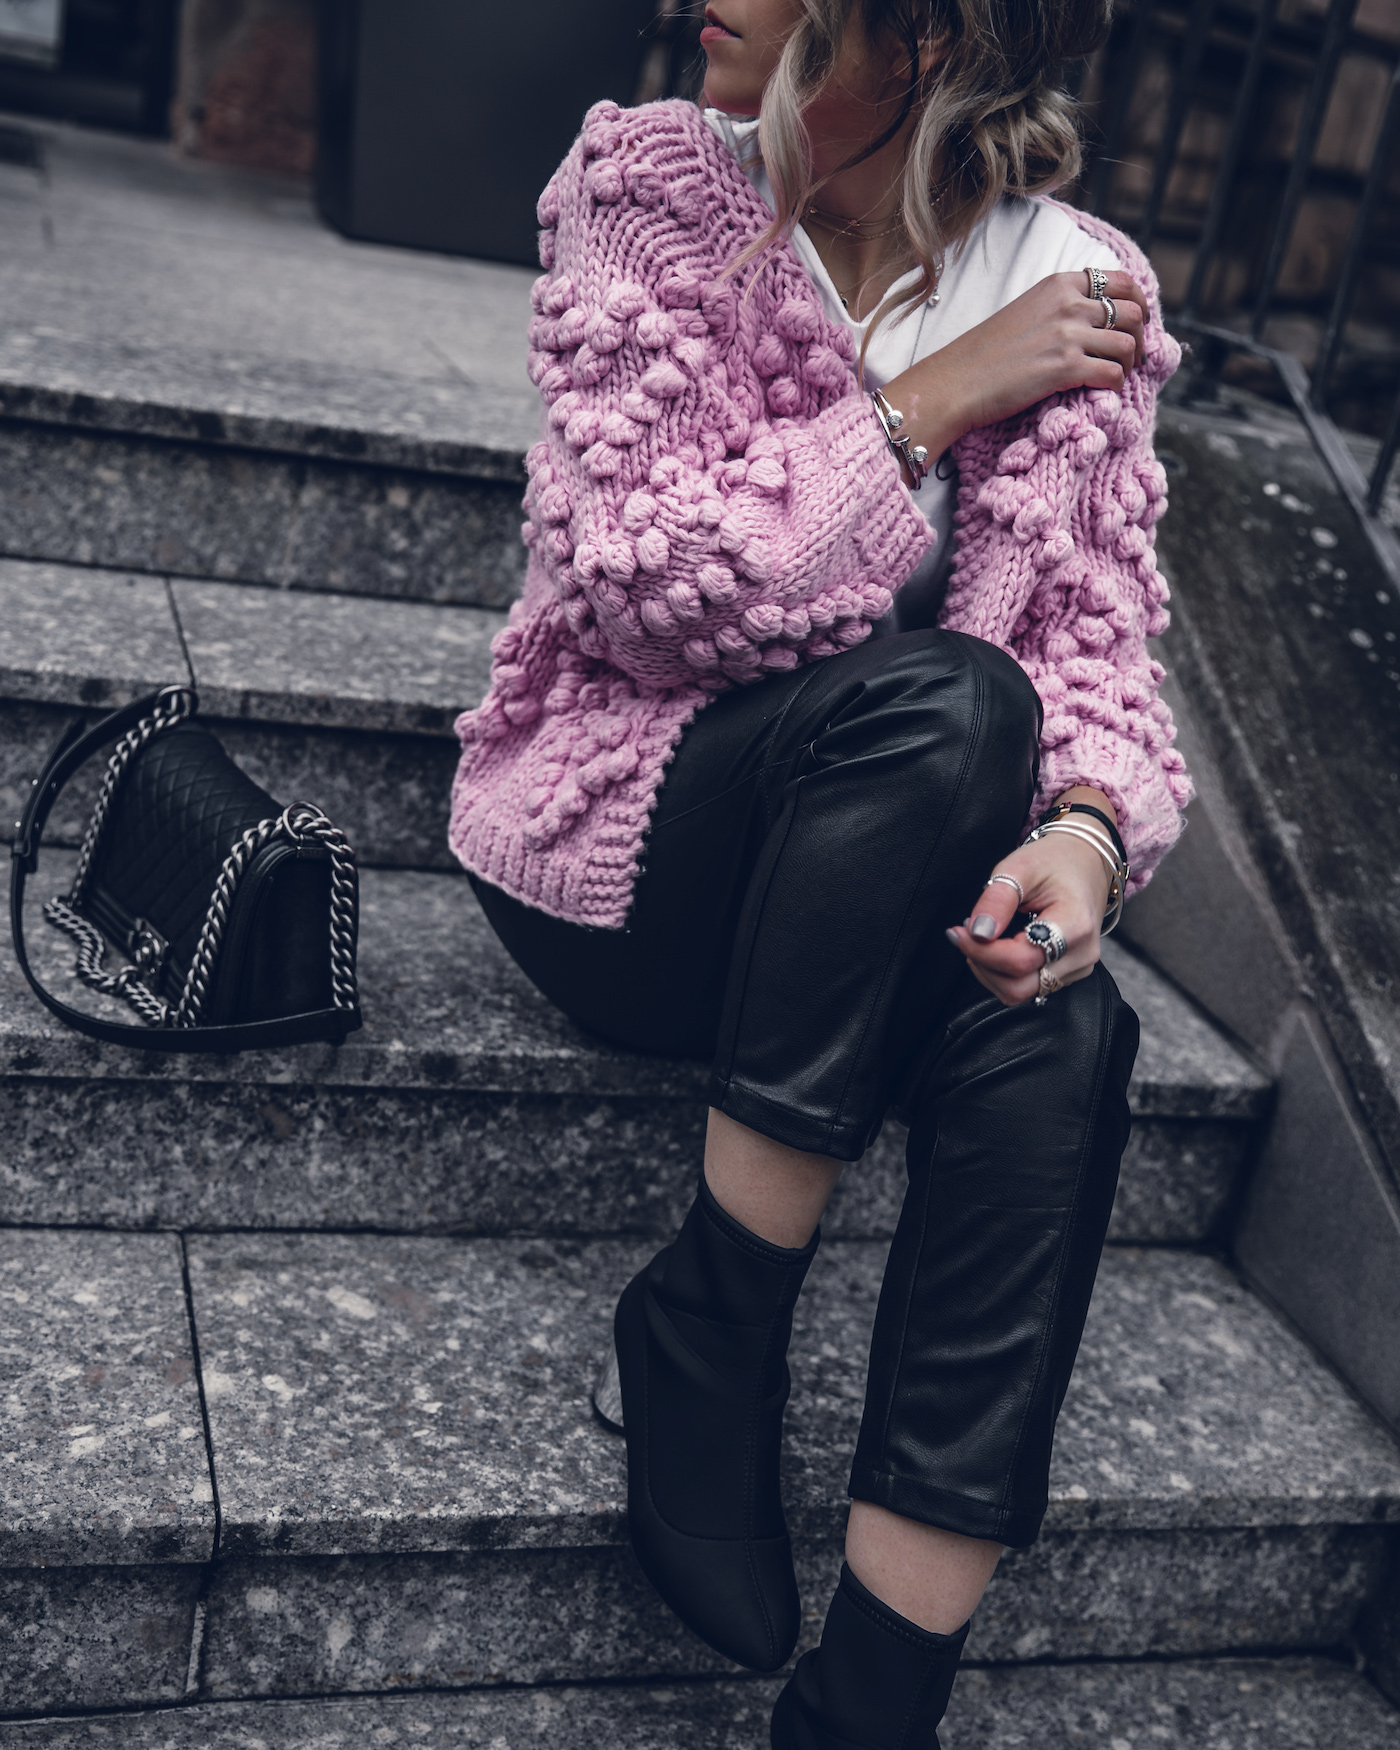 Mixing Textures Winter Street Style 2017 Blog Outfit | Want Get Repeat Fashion Blog Erlangen Mode